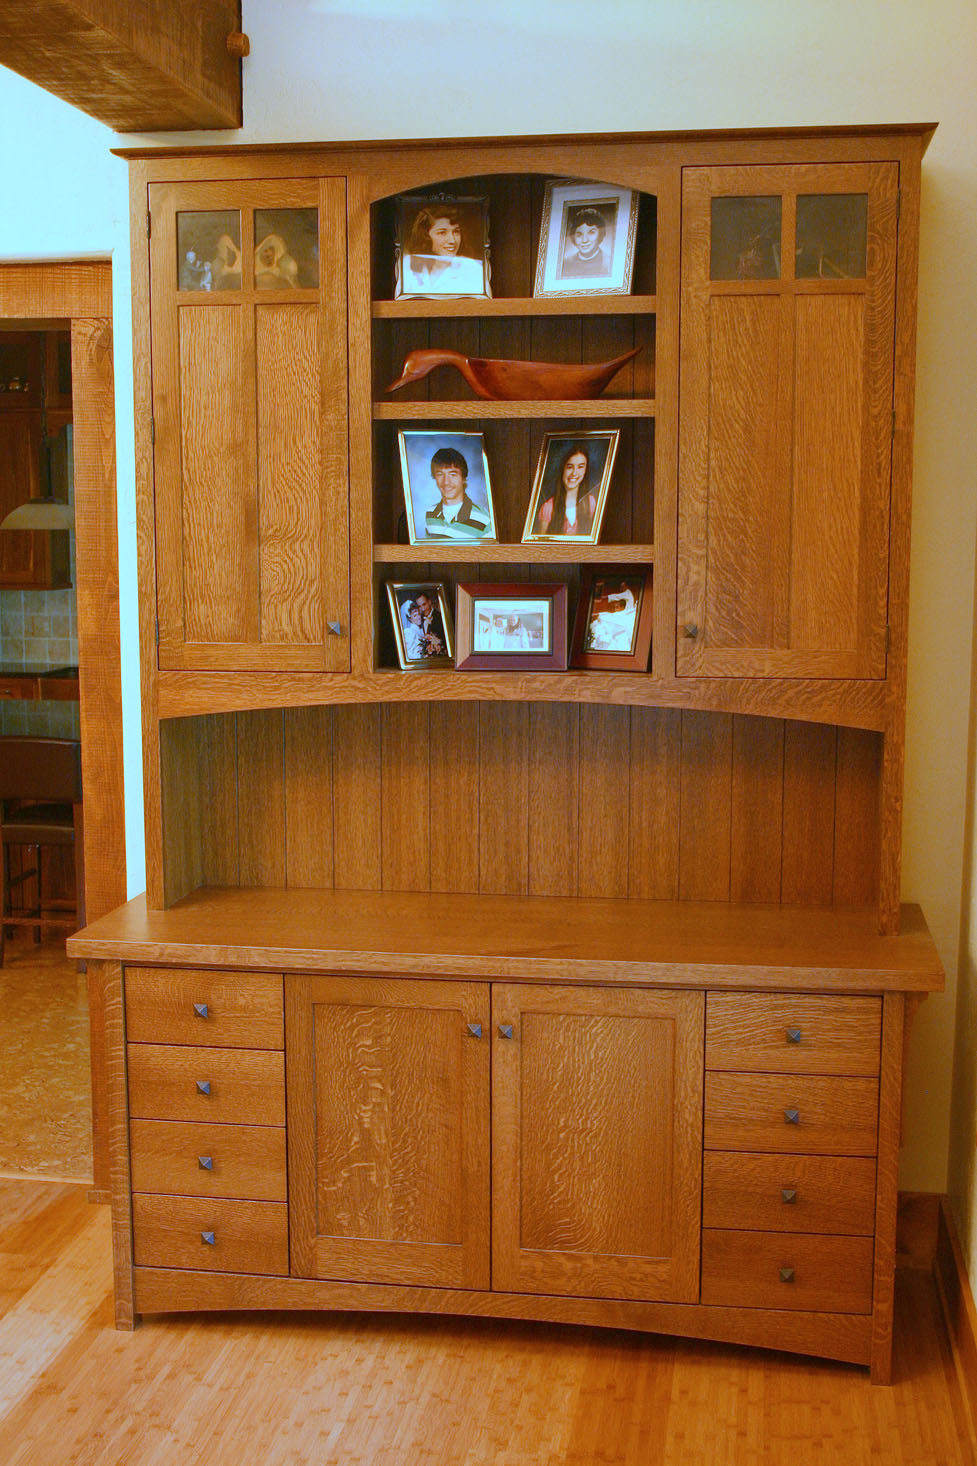 Willow Llodge Arts and Crafts desk